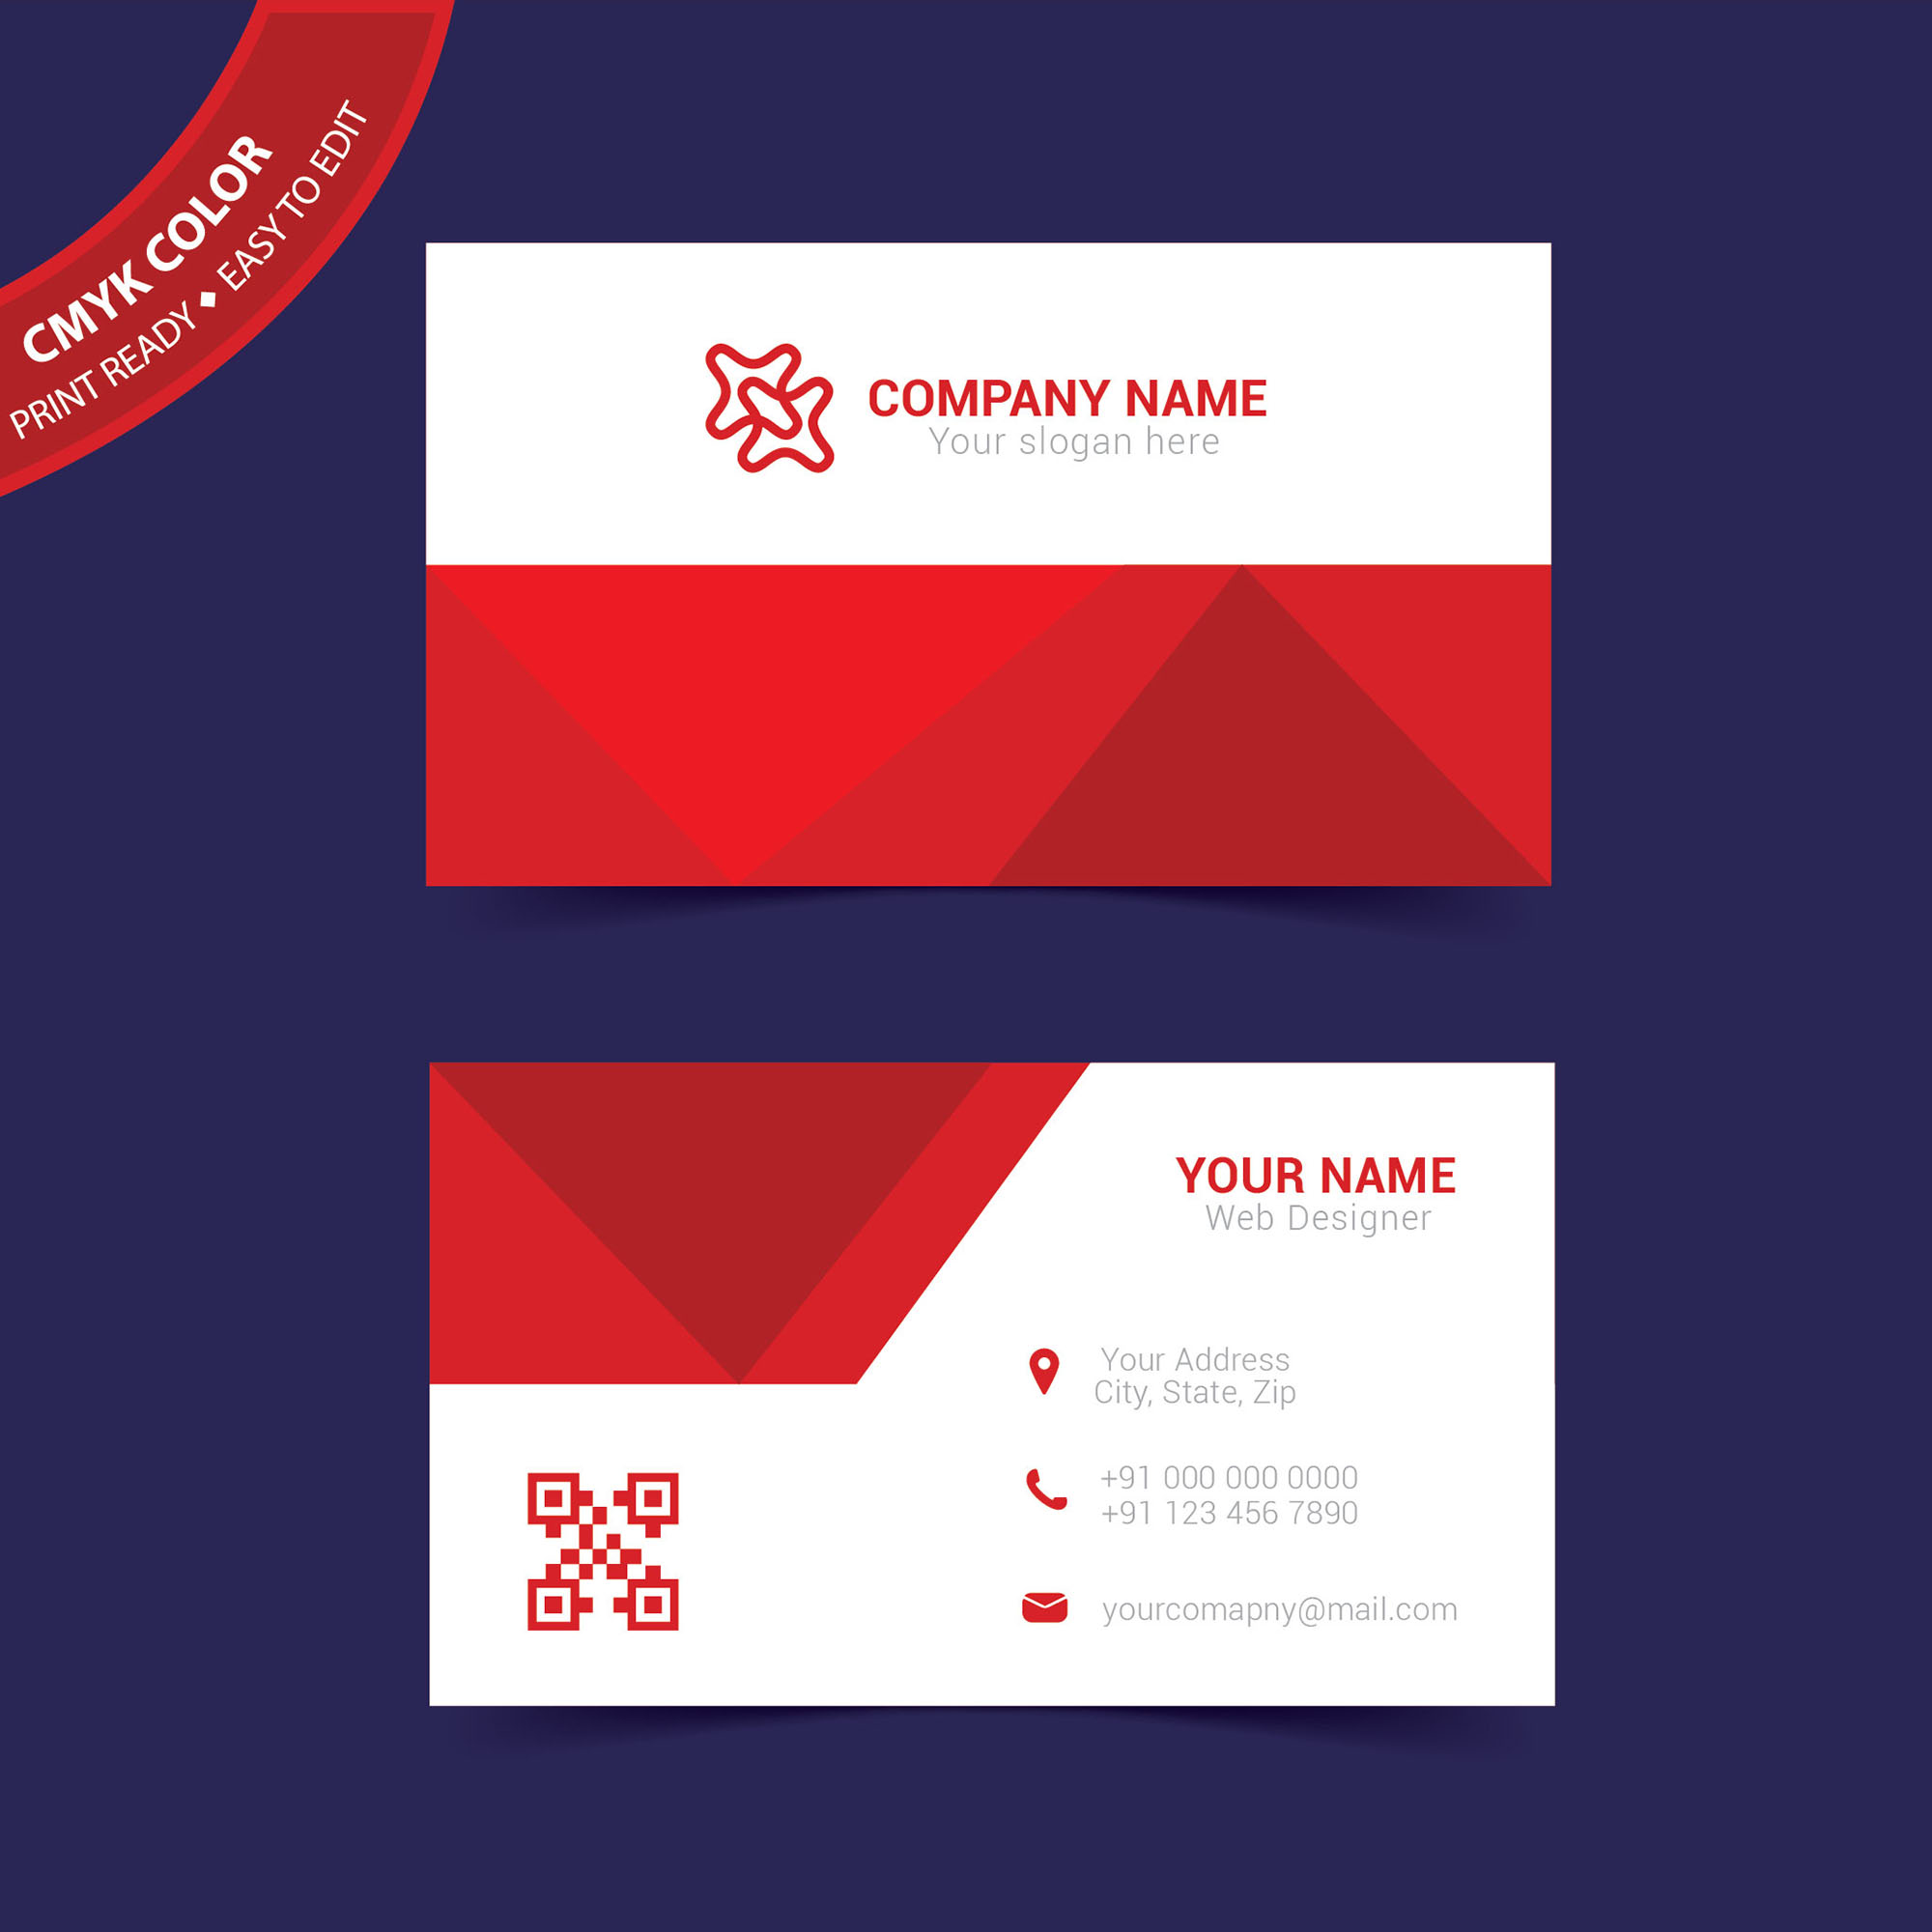 Business card print template free download wisxi business card business cards business card design business card template design templates accmission Images